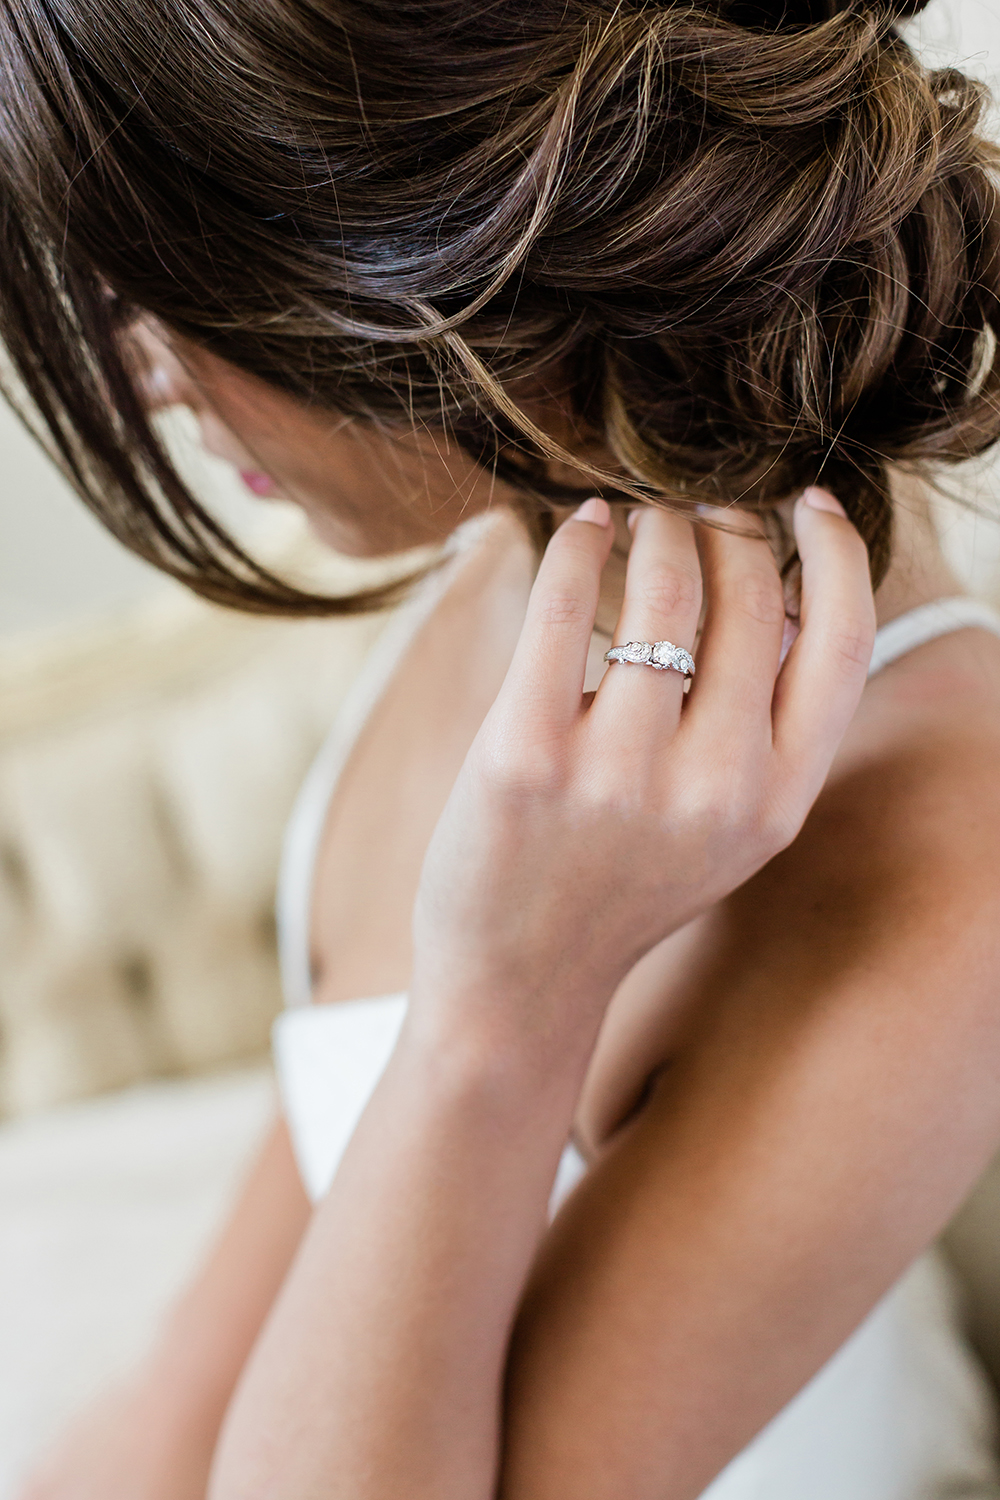 How to Choose Your Vintage, Ethical Engagement Ring